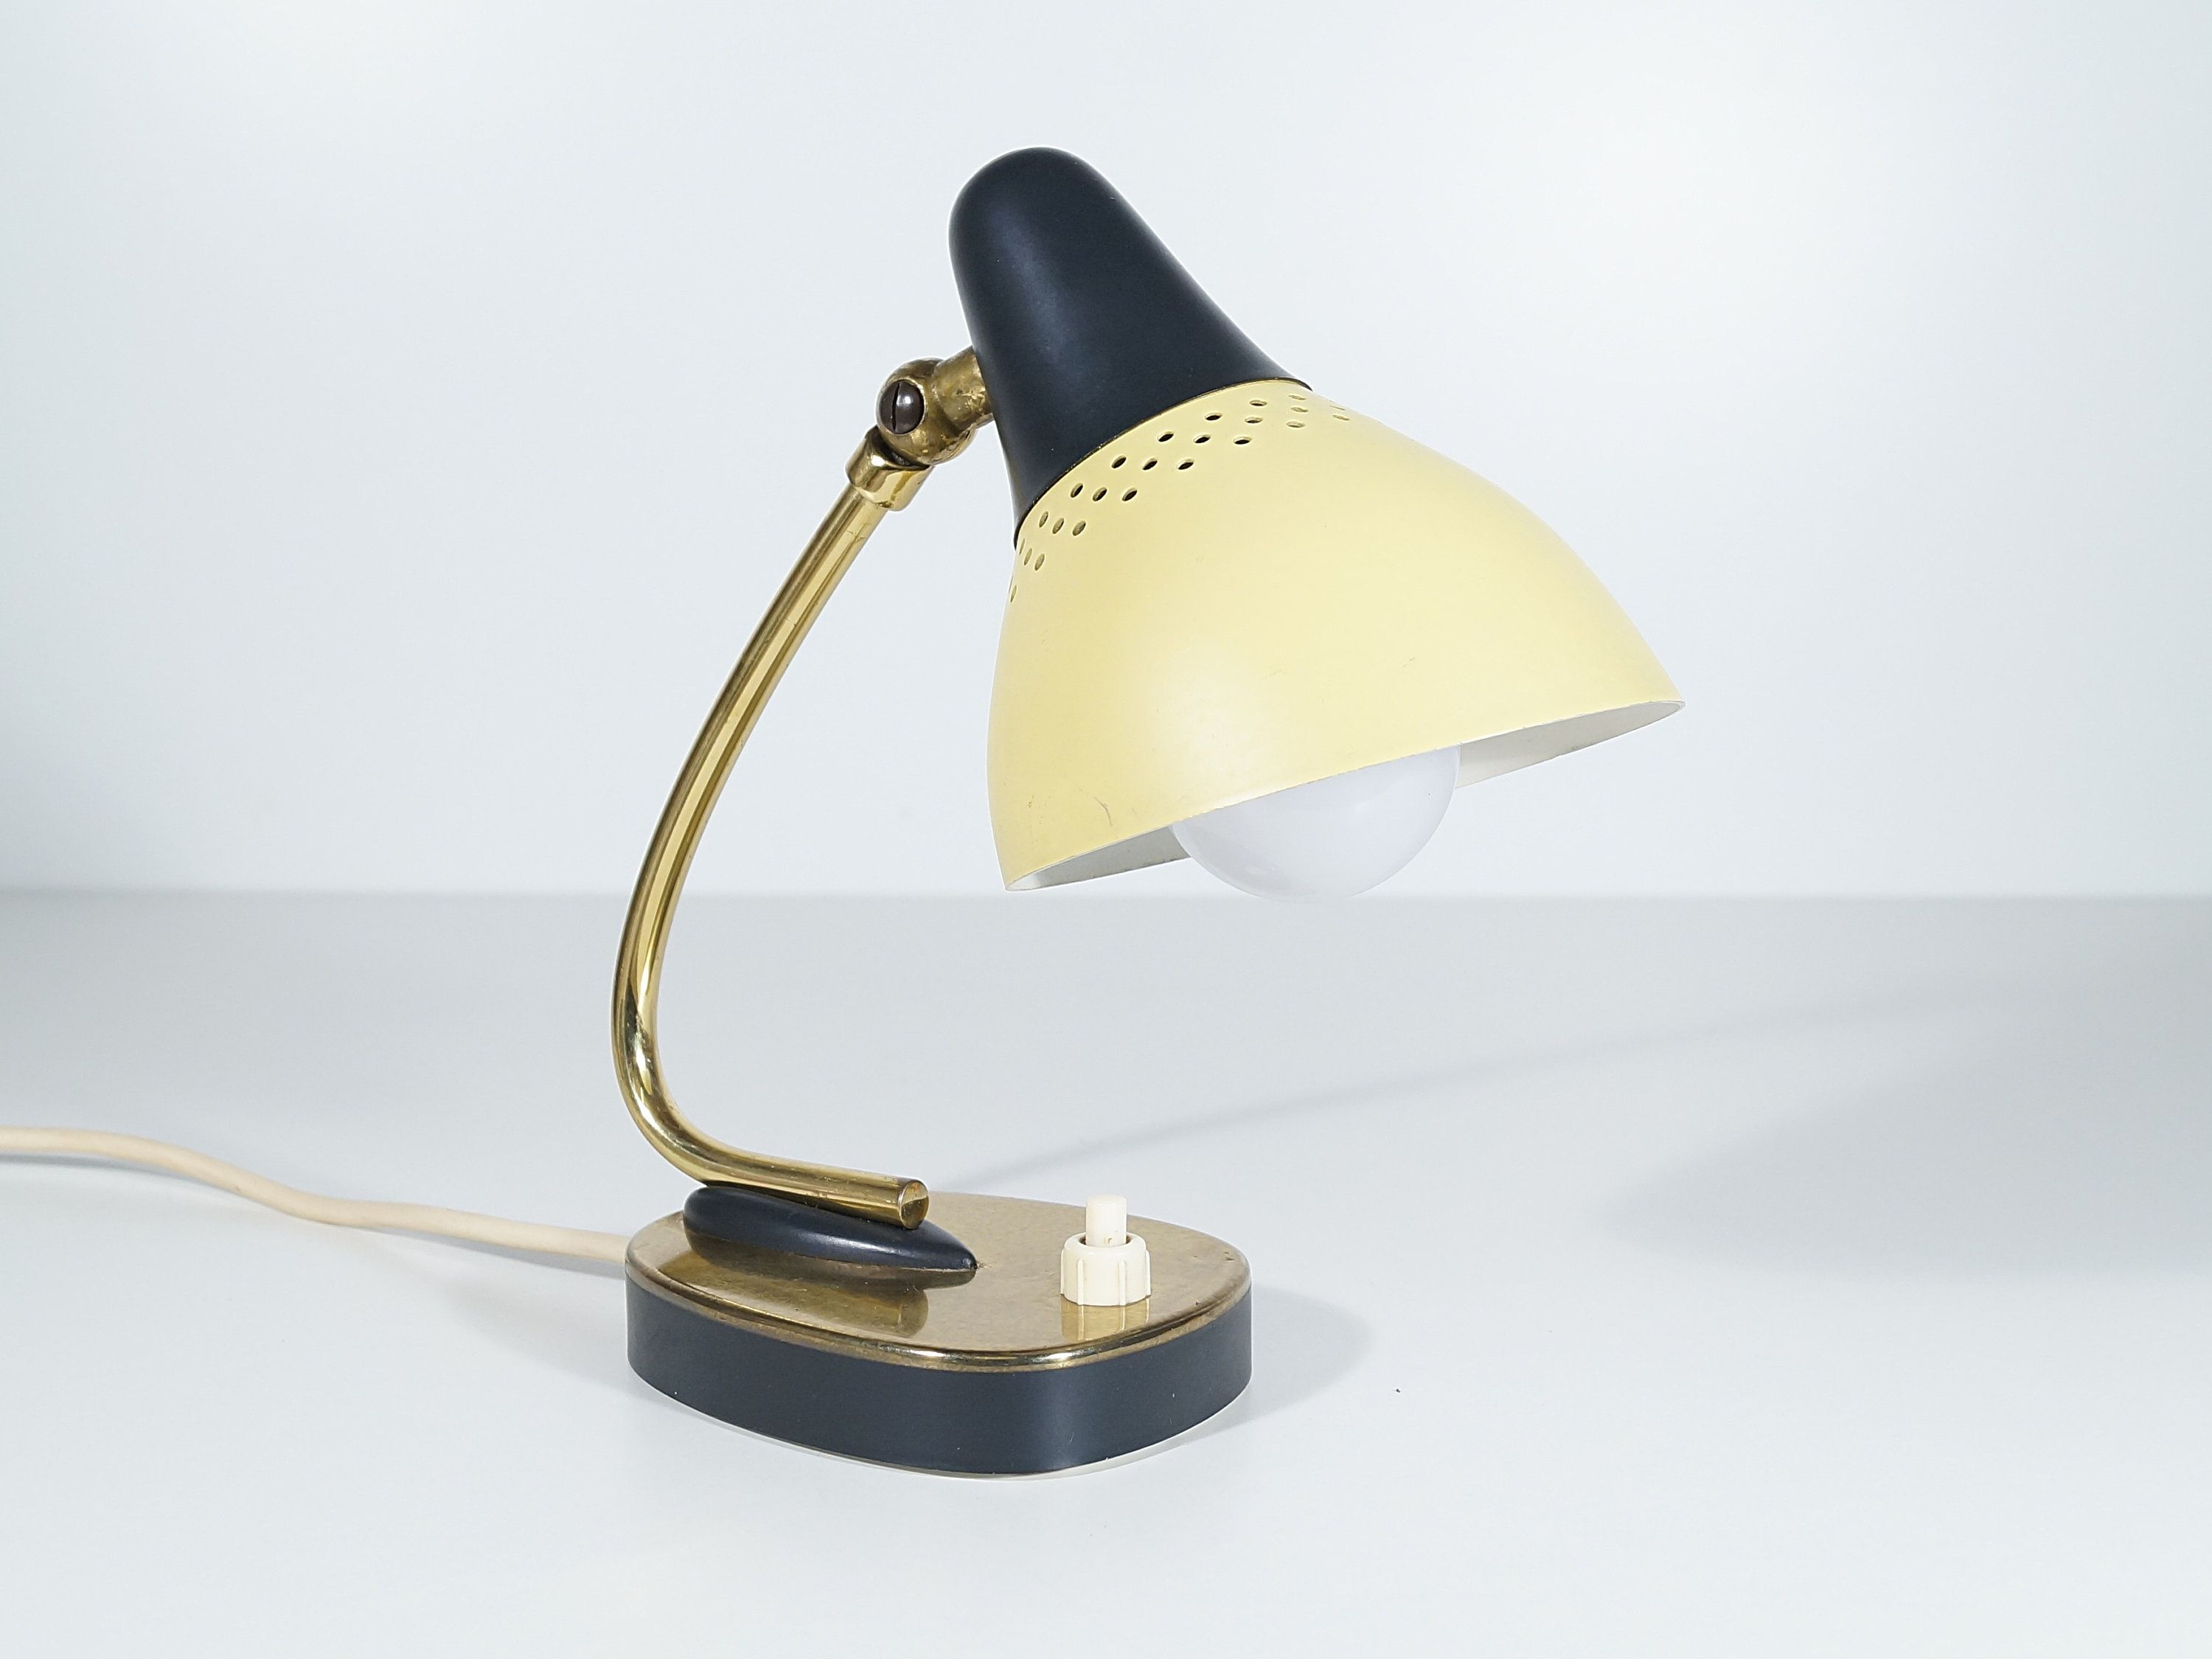 Schlafzimmer Tischlampen Small Bedside Lamp 50s Vintage Lamp Table Lamp Retro Bedroom